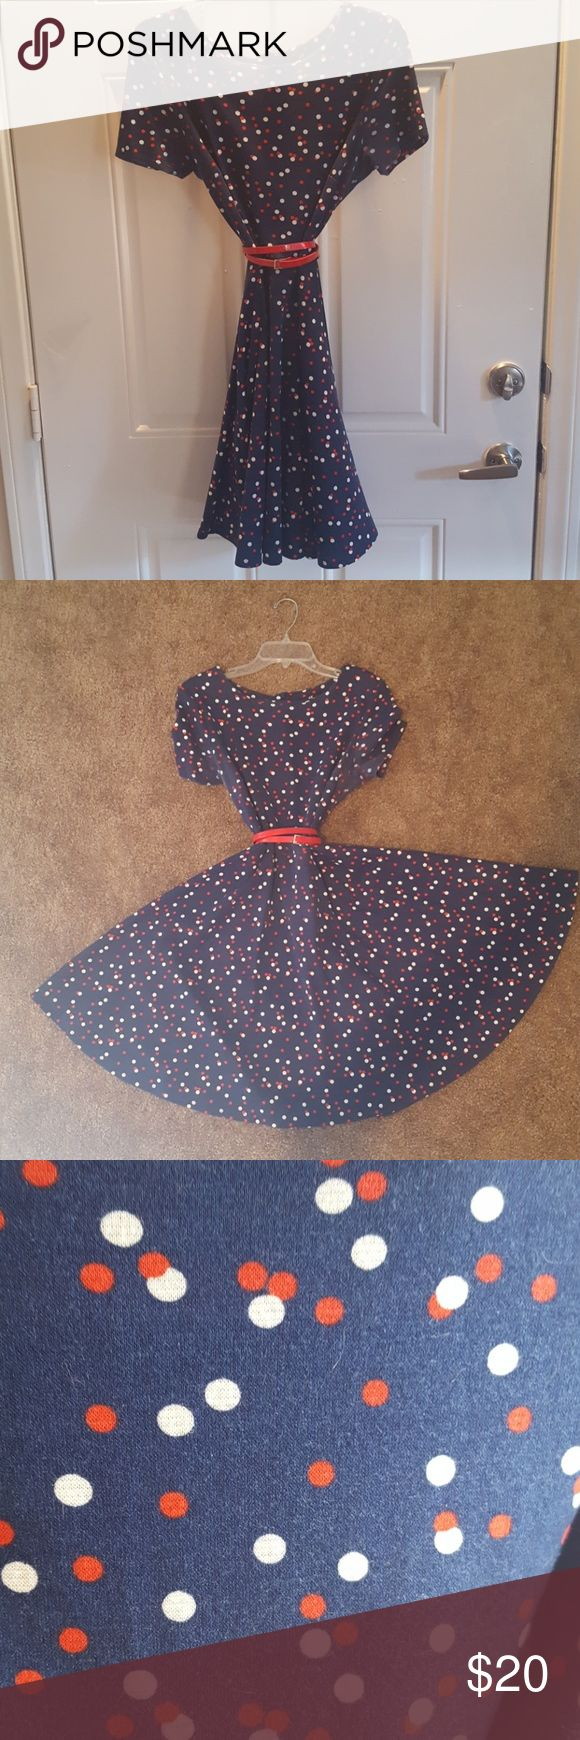 CUTE H&M Polka Dot Dress! Navy Dress with Red and White Polka Dots and dainty red belt. Fitted in the top, great flare skit that comes to just above the knee. Pair it with a red camo sweater, or navy tights! Fun for everyday or a great, casual night out! H&M Dresses Midi